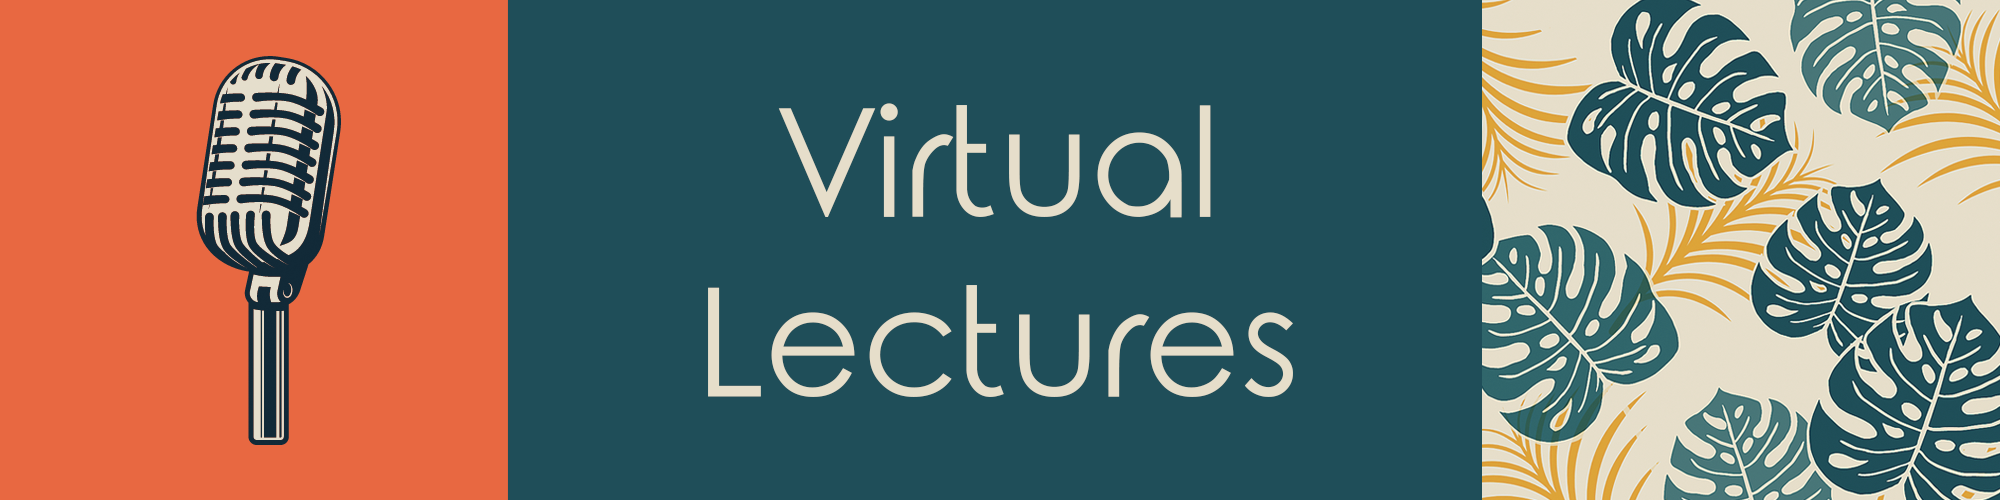 Virtual Lectures